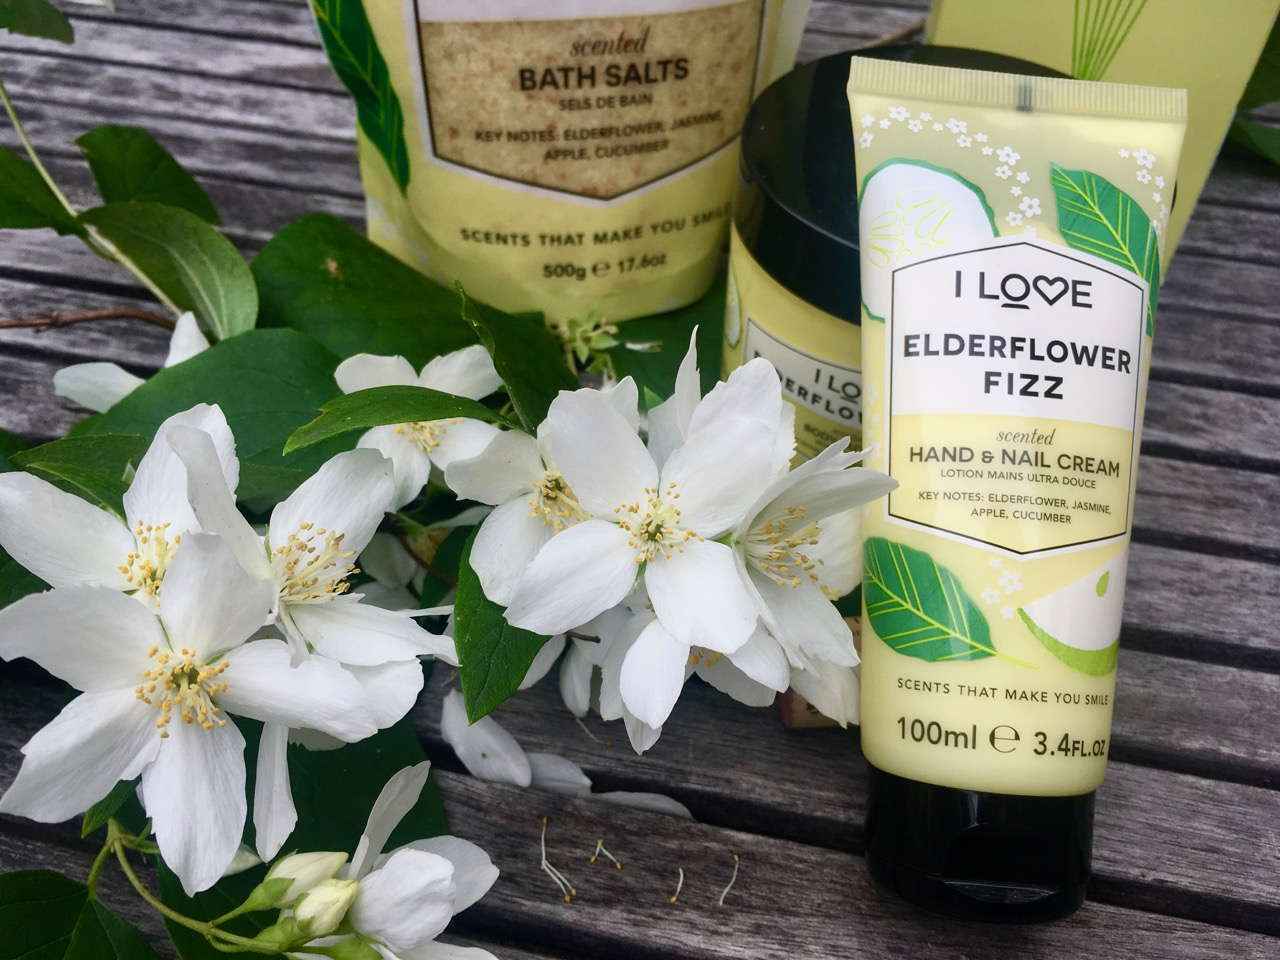 I love cosmetics elderflower fizz hand and nail cream